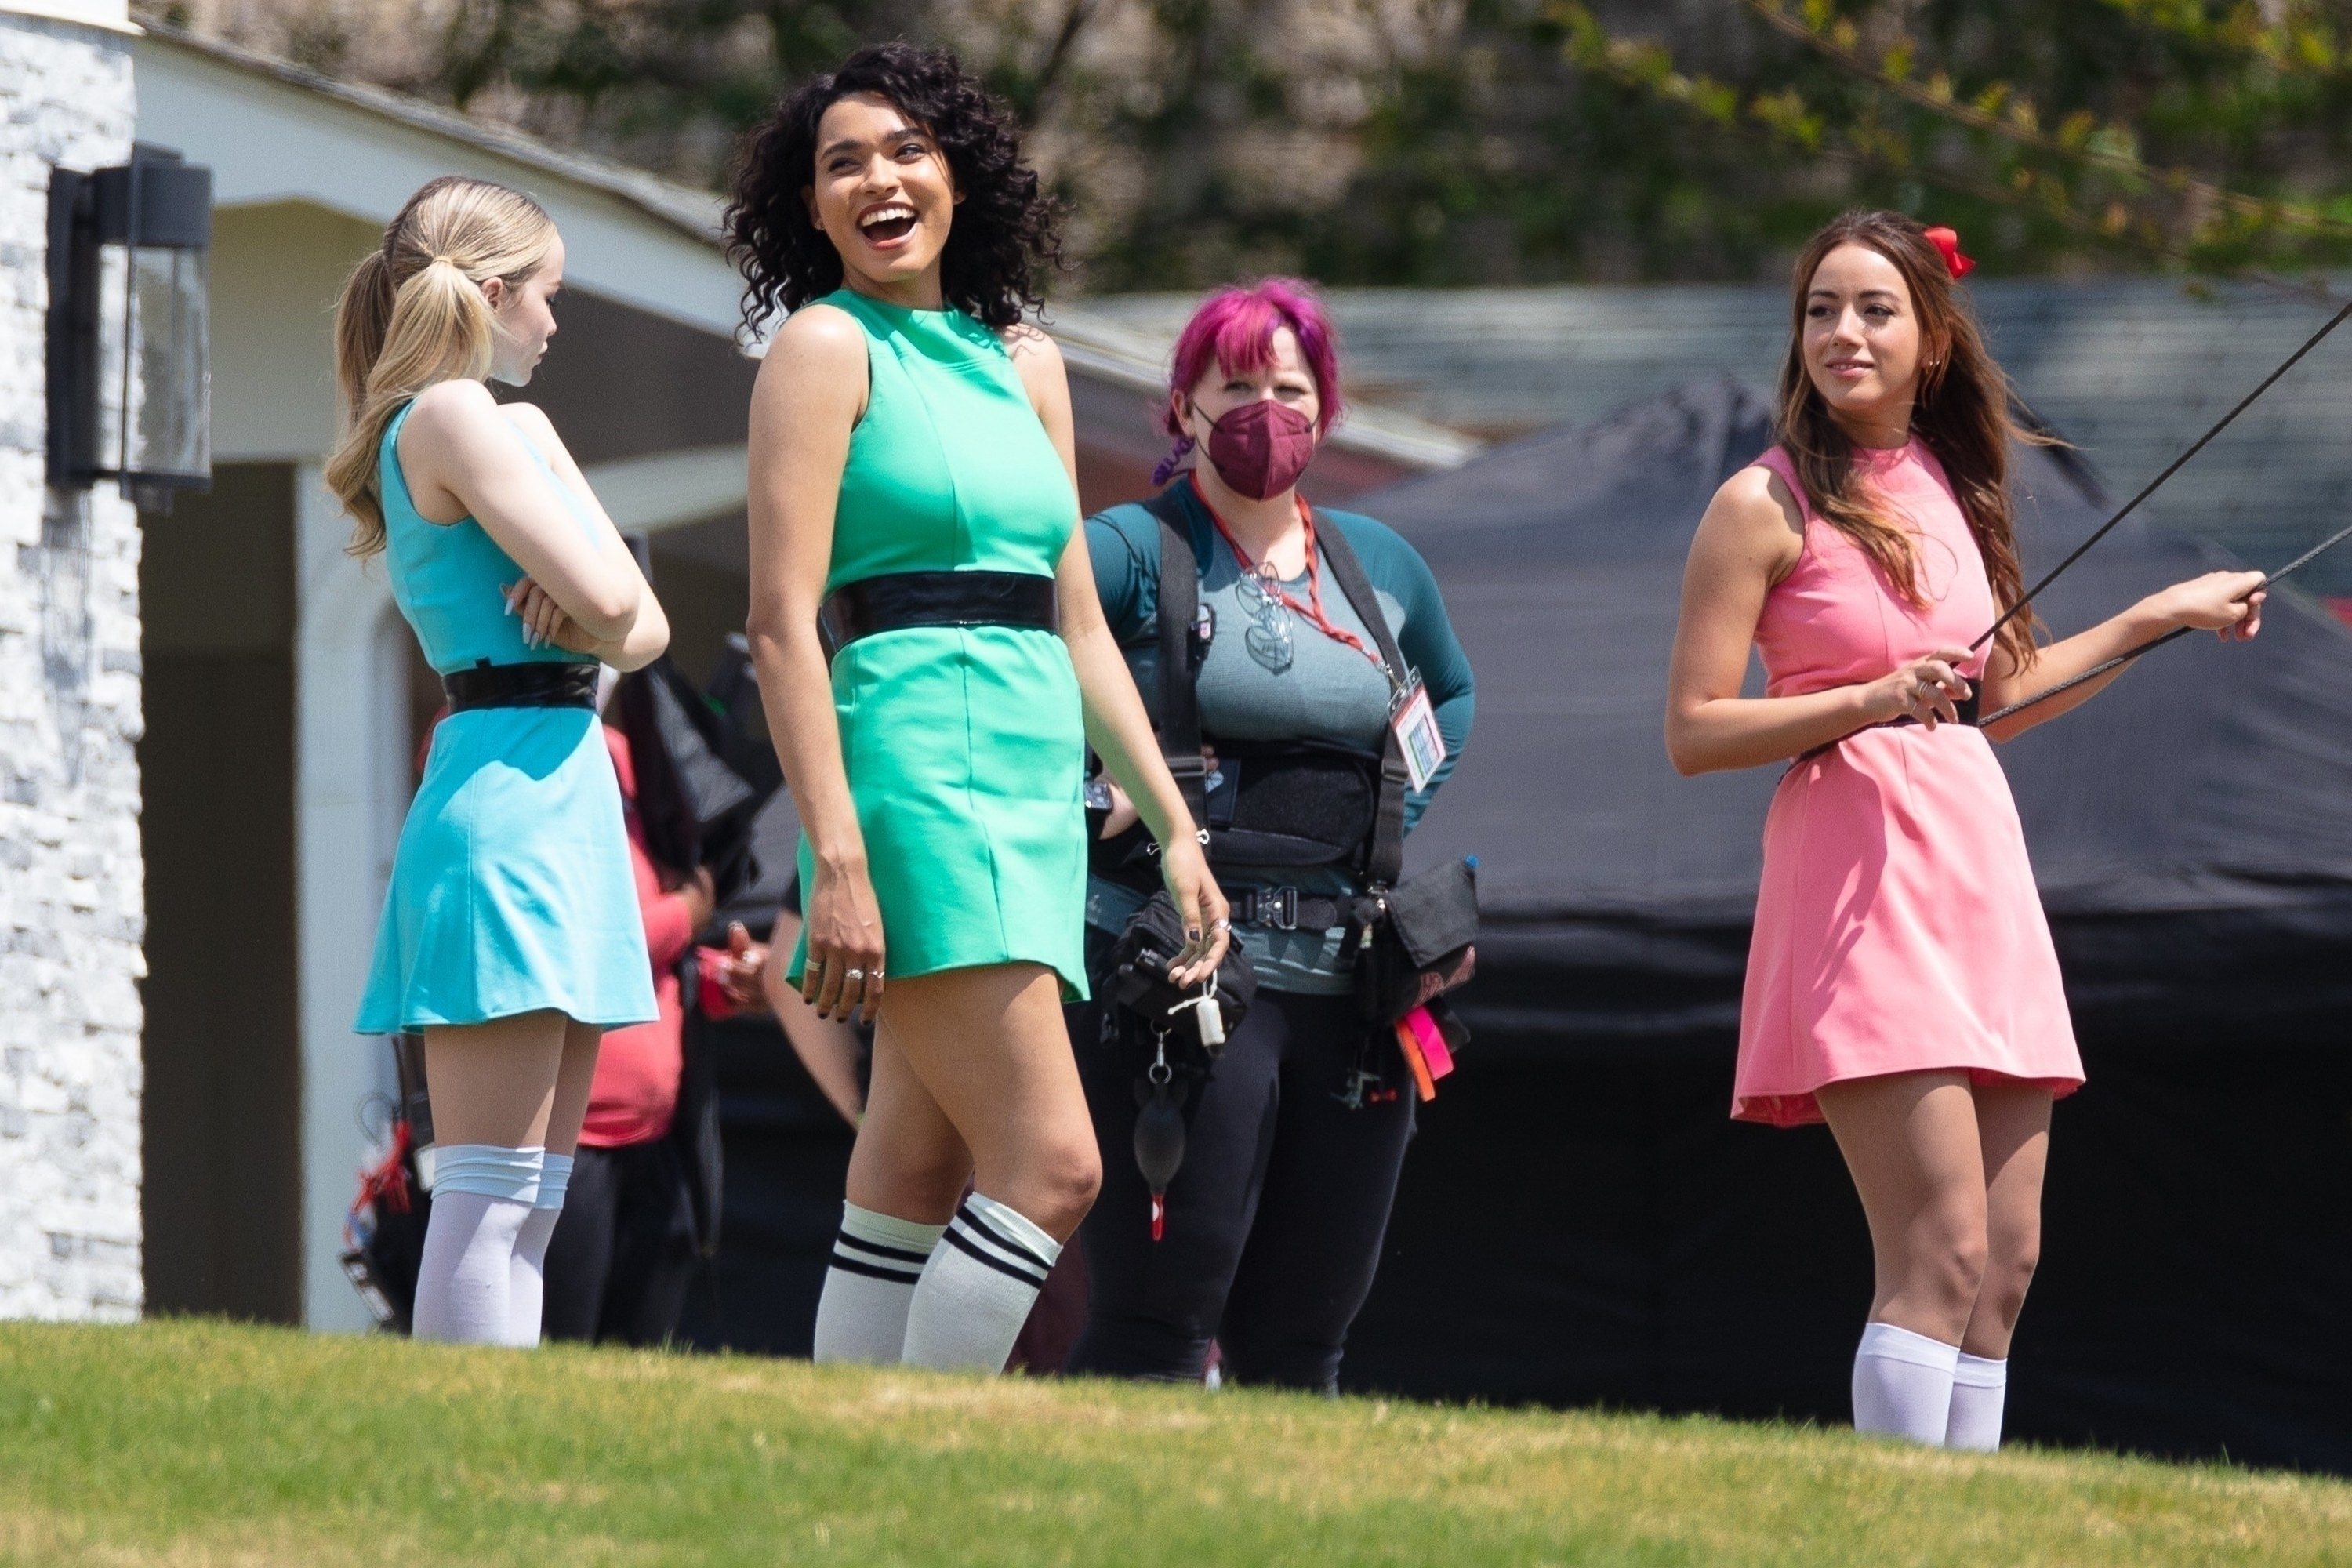 Chloe Bennet, Dove Cameron, and Yana Perrault dressed as Blossom, Bubbles, and Buttercup